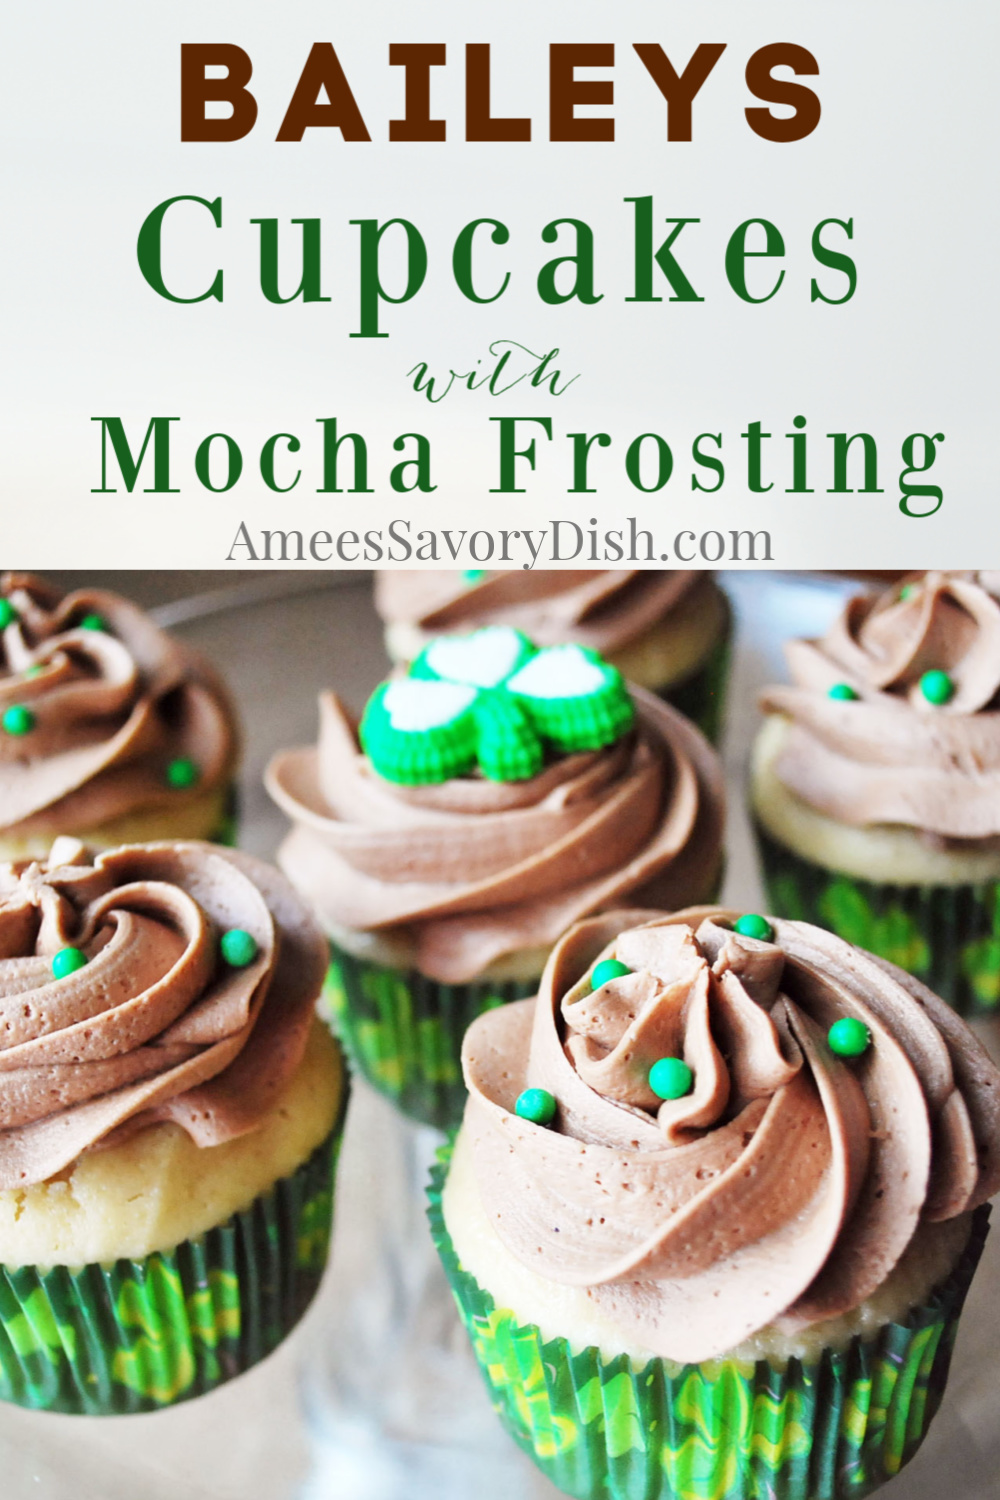 What goes better with Baileys Irish Cream than chocolate and a freshly brewed cup of coffee?!  These Baileys Cupcakes topped with mocha buttercream are a magical combo!  #baileyscupcakes #mochafrosting #buttercreamfrosting #cupcakerecipe #cupcakes via @Ameessavorydish